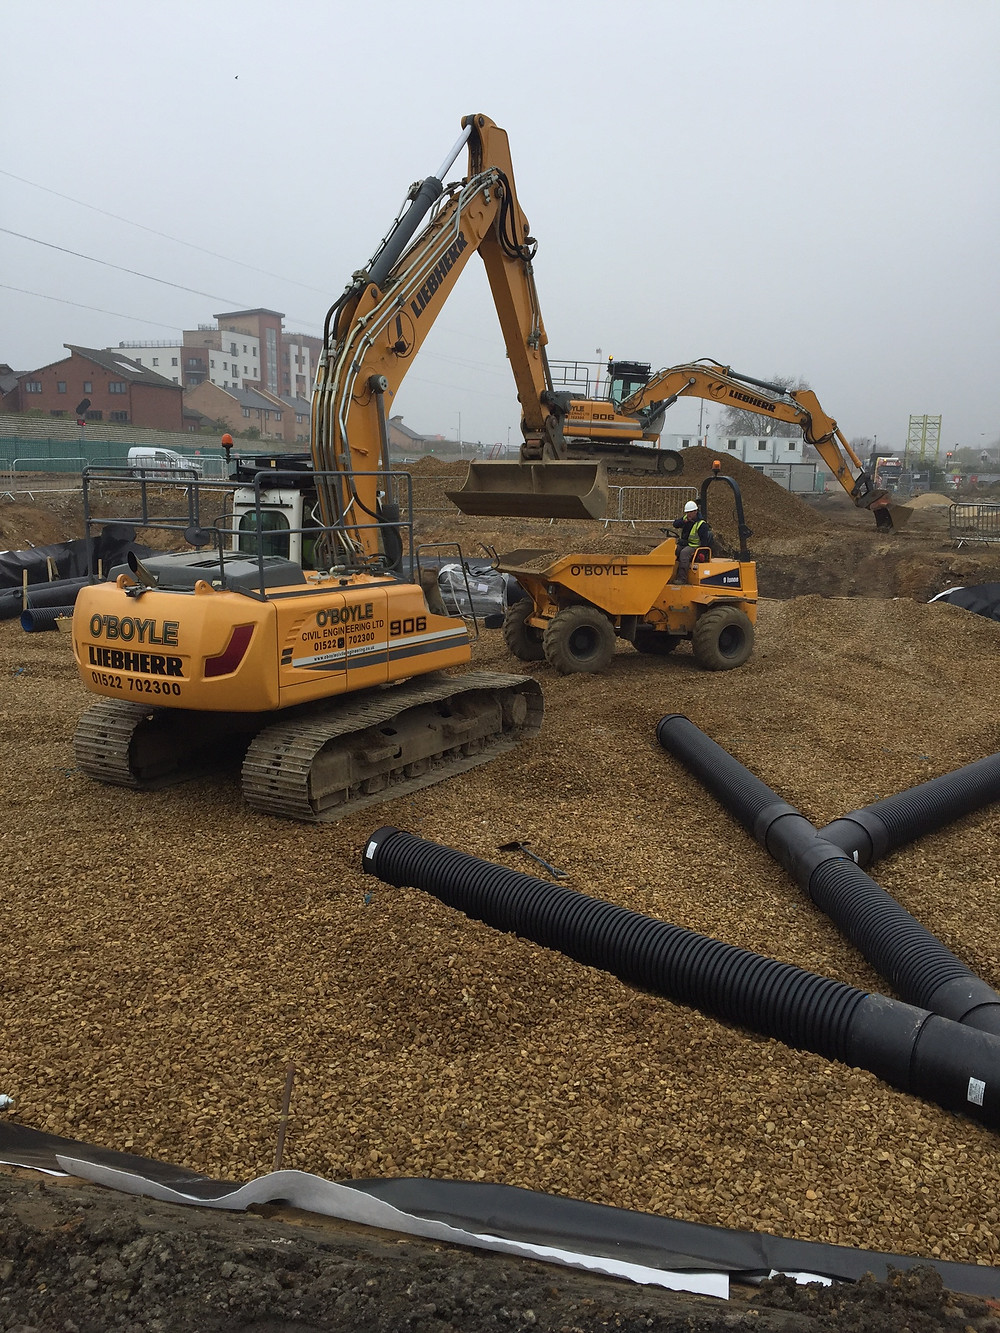 Works at Peterborough are still ongoing. Pictured are two pieces of heavy machinery.